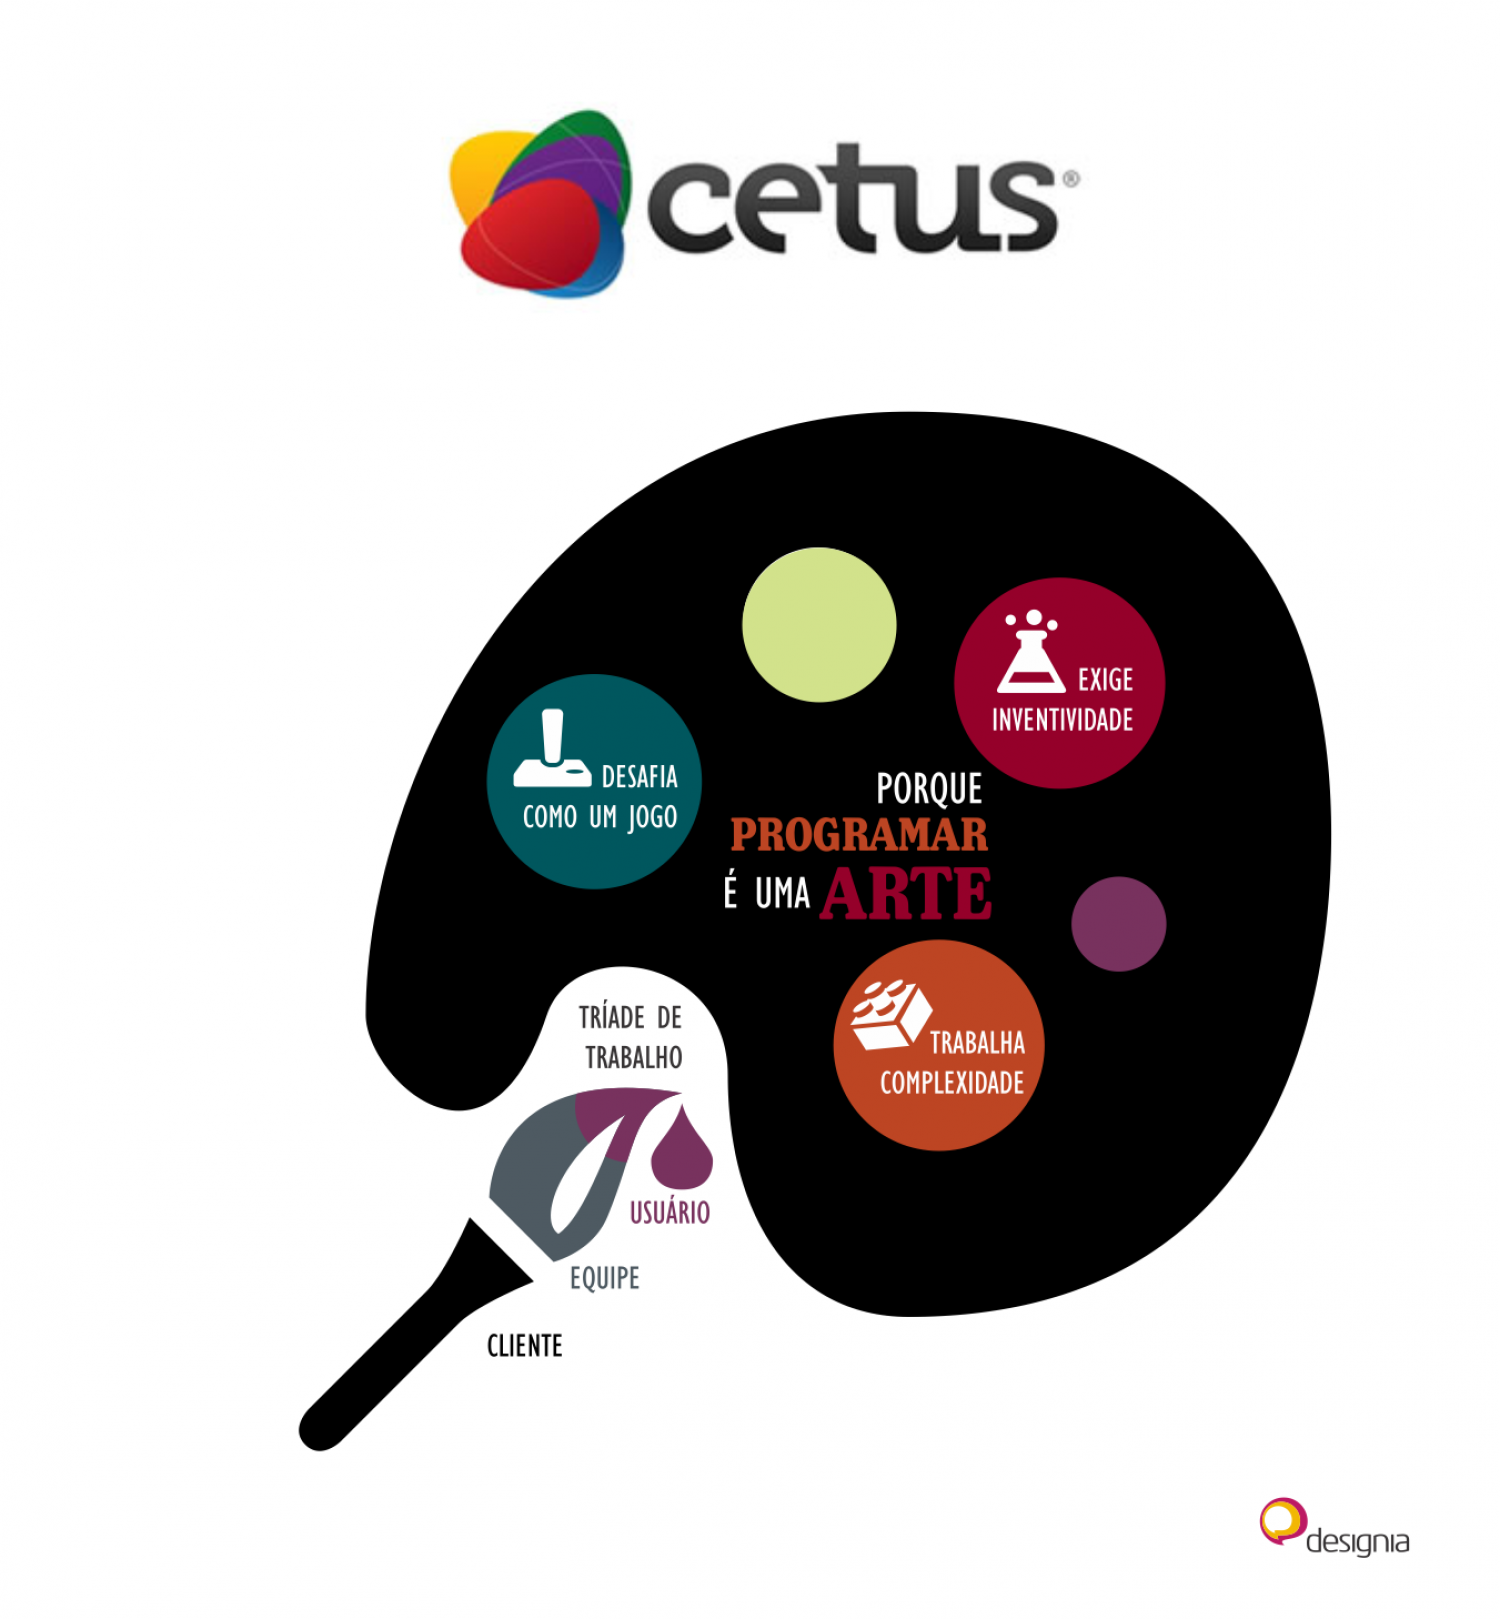 Cetus: Why computer programming is an art Infographic